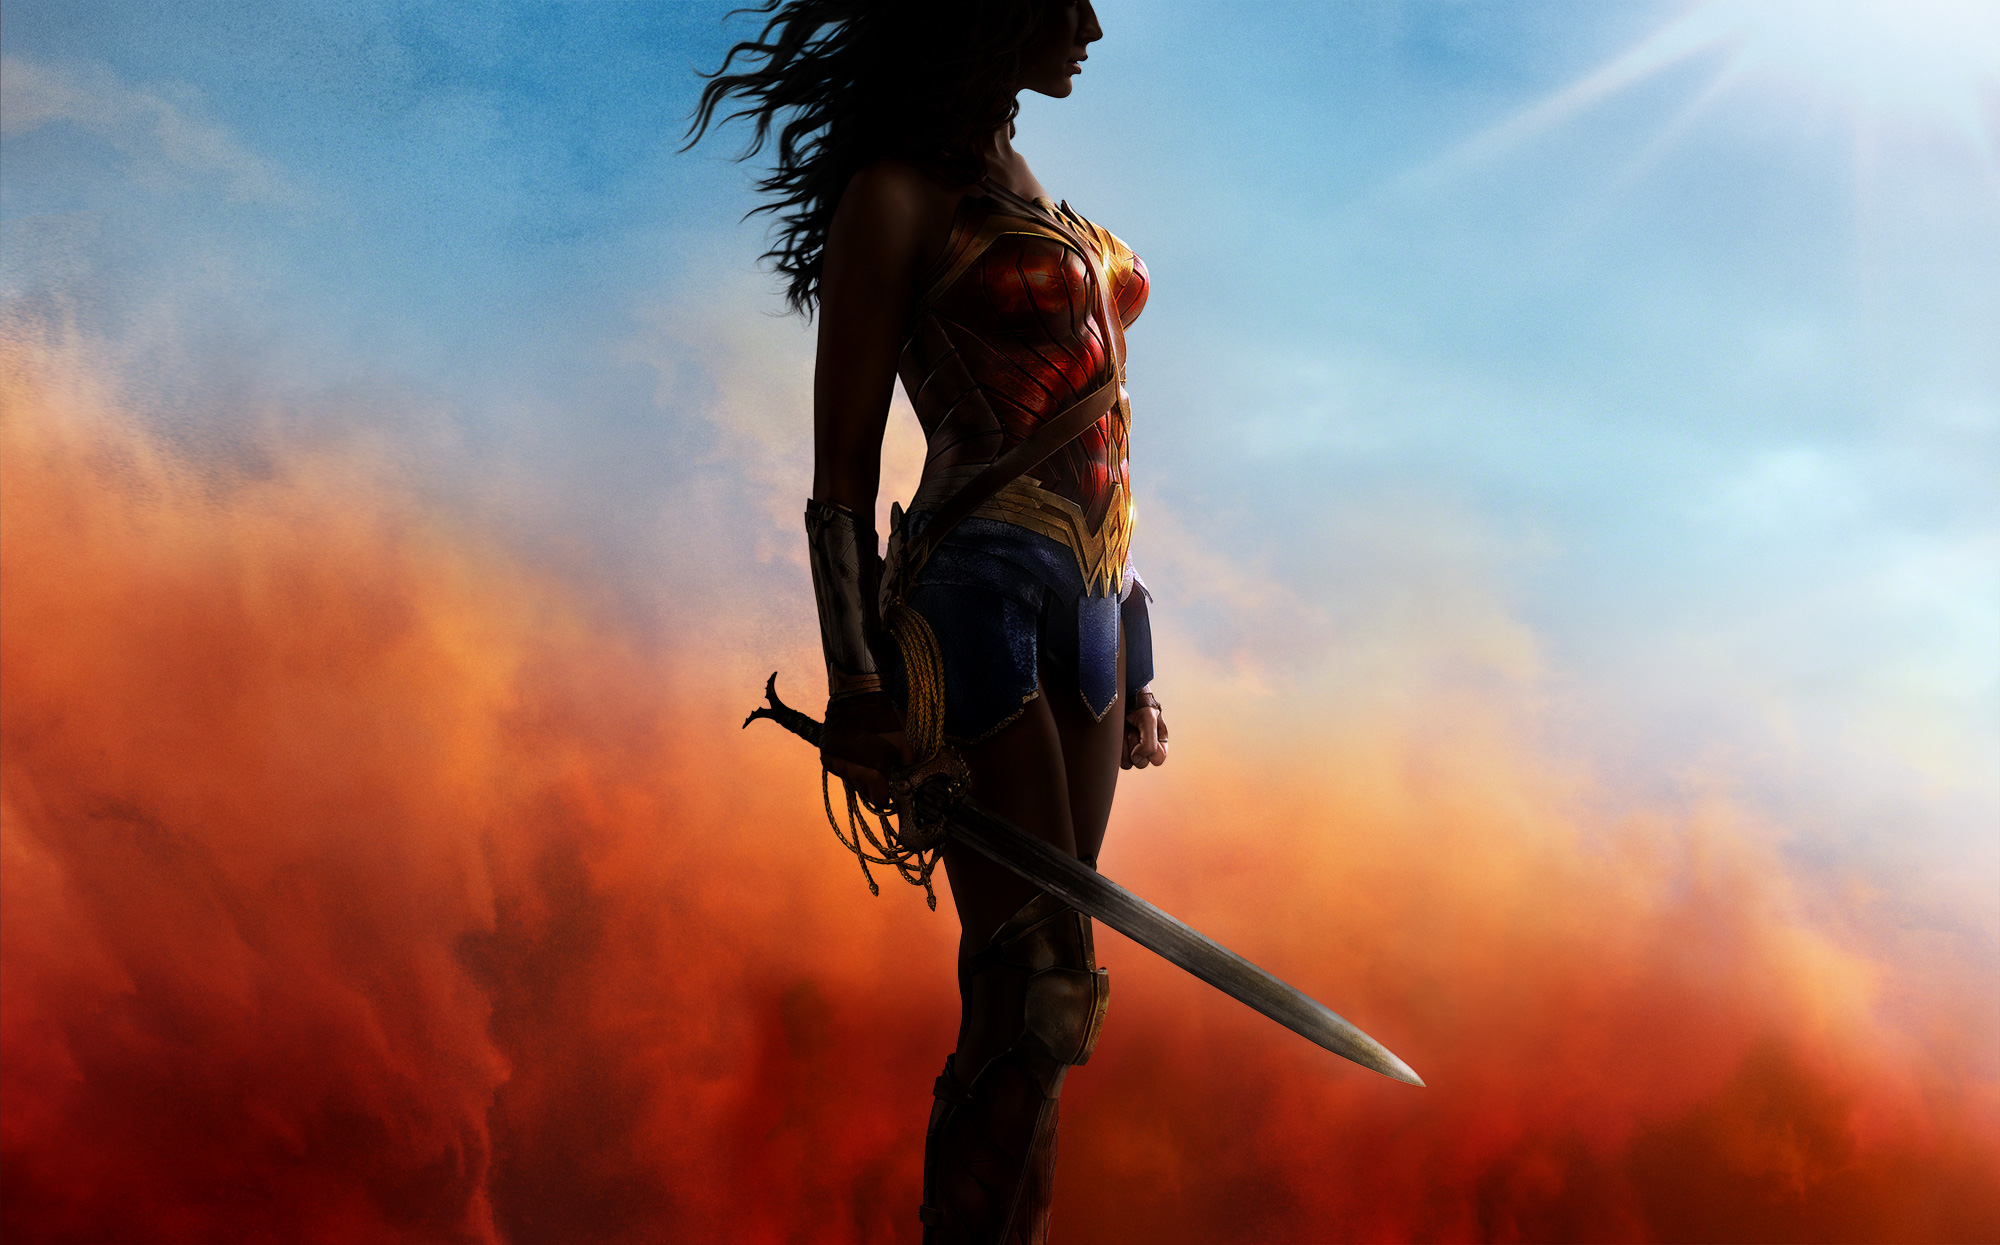 Wonder Women wallpapers 4k PC